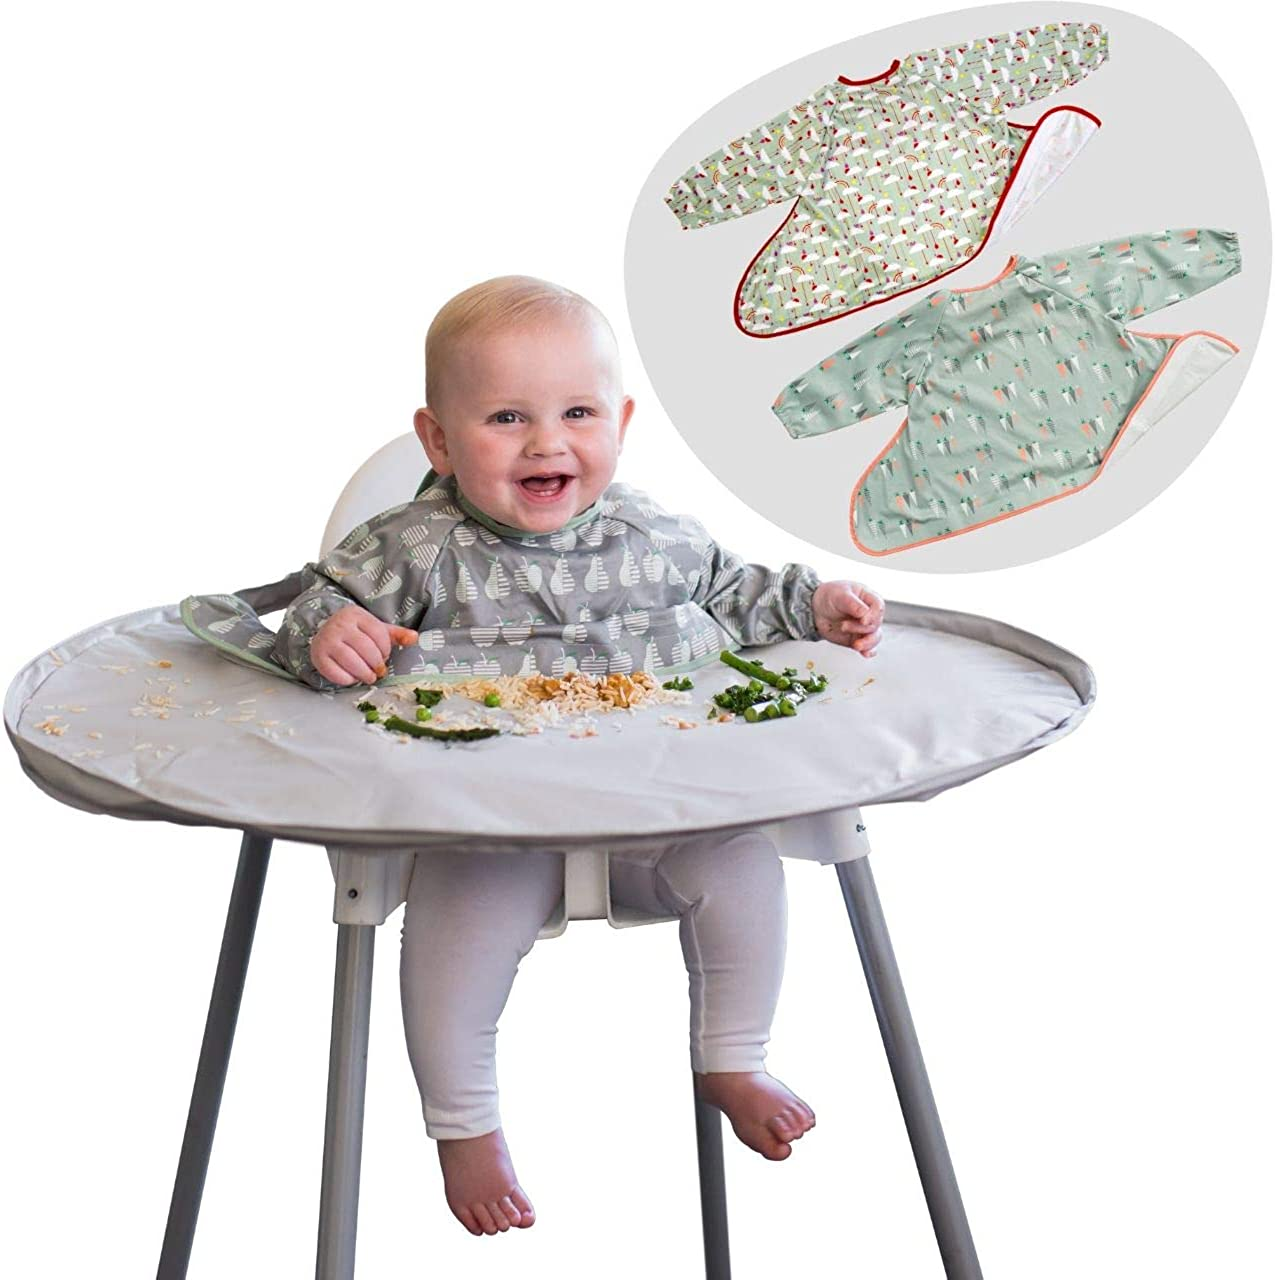 Weaning Bib and Tray Kit Bundle- Tidy Tot Tray + 3 Coverall Food Catcher Bibs with Sleeves. Baby Led Weaning Bib Essential! Perfect for Messy Play and Baby weaning